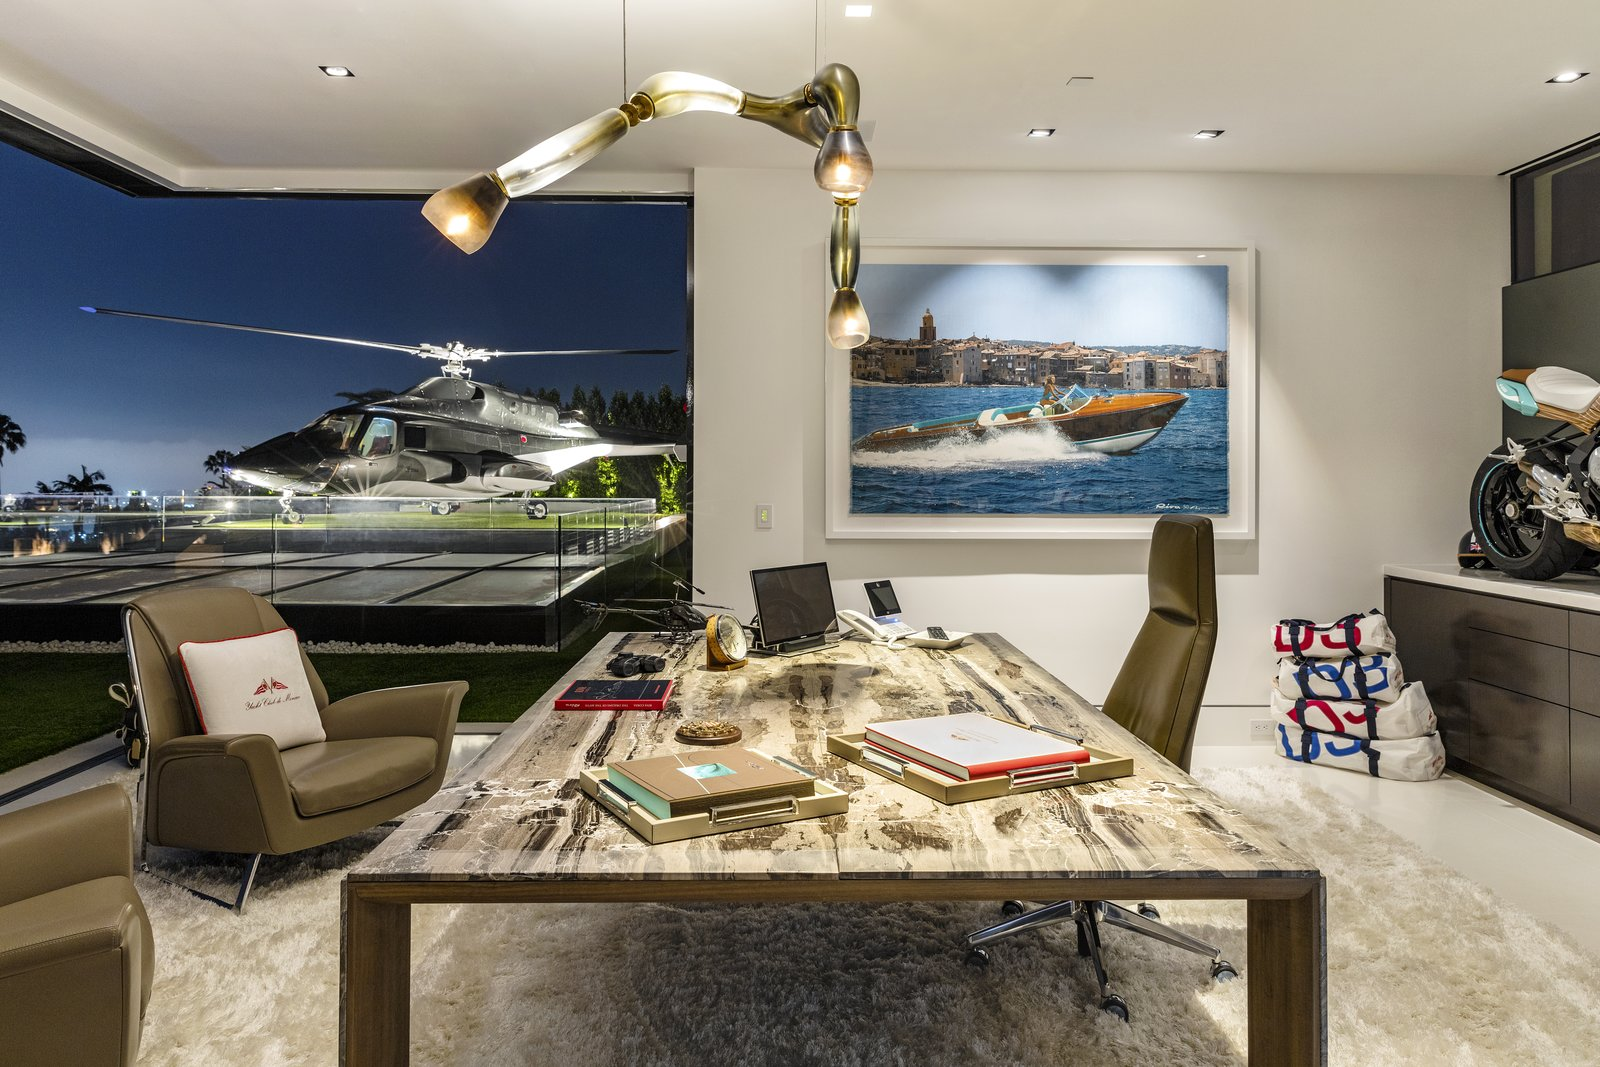 Photo 7 of 8 in Most Expensive Home in the U.S. Lists for $250 Million